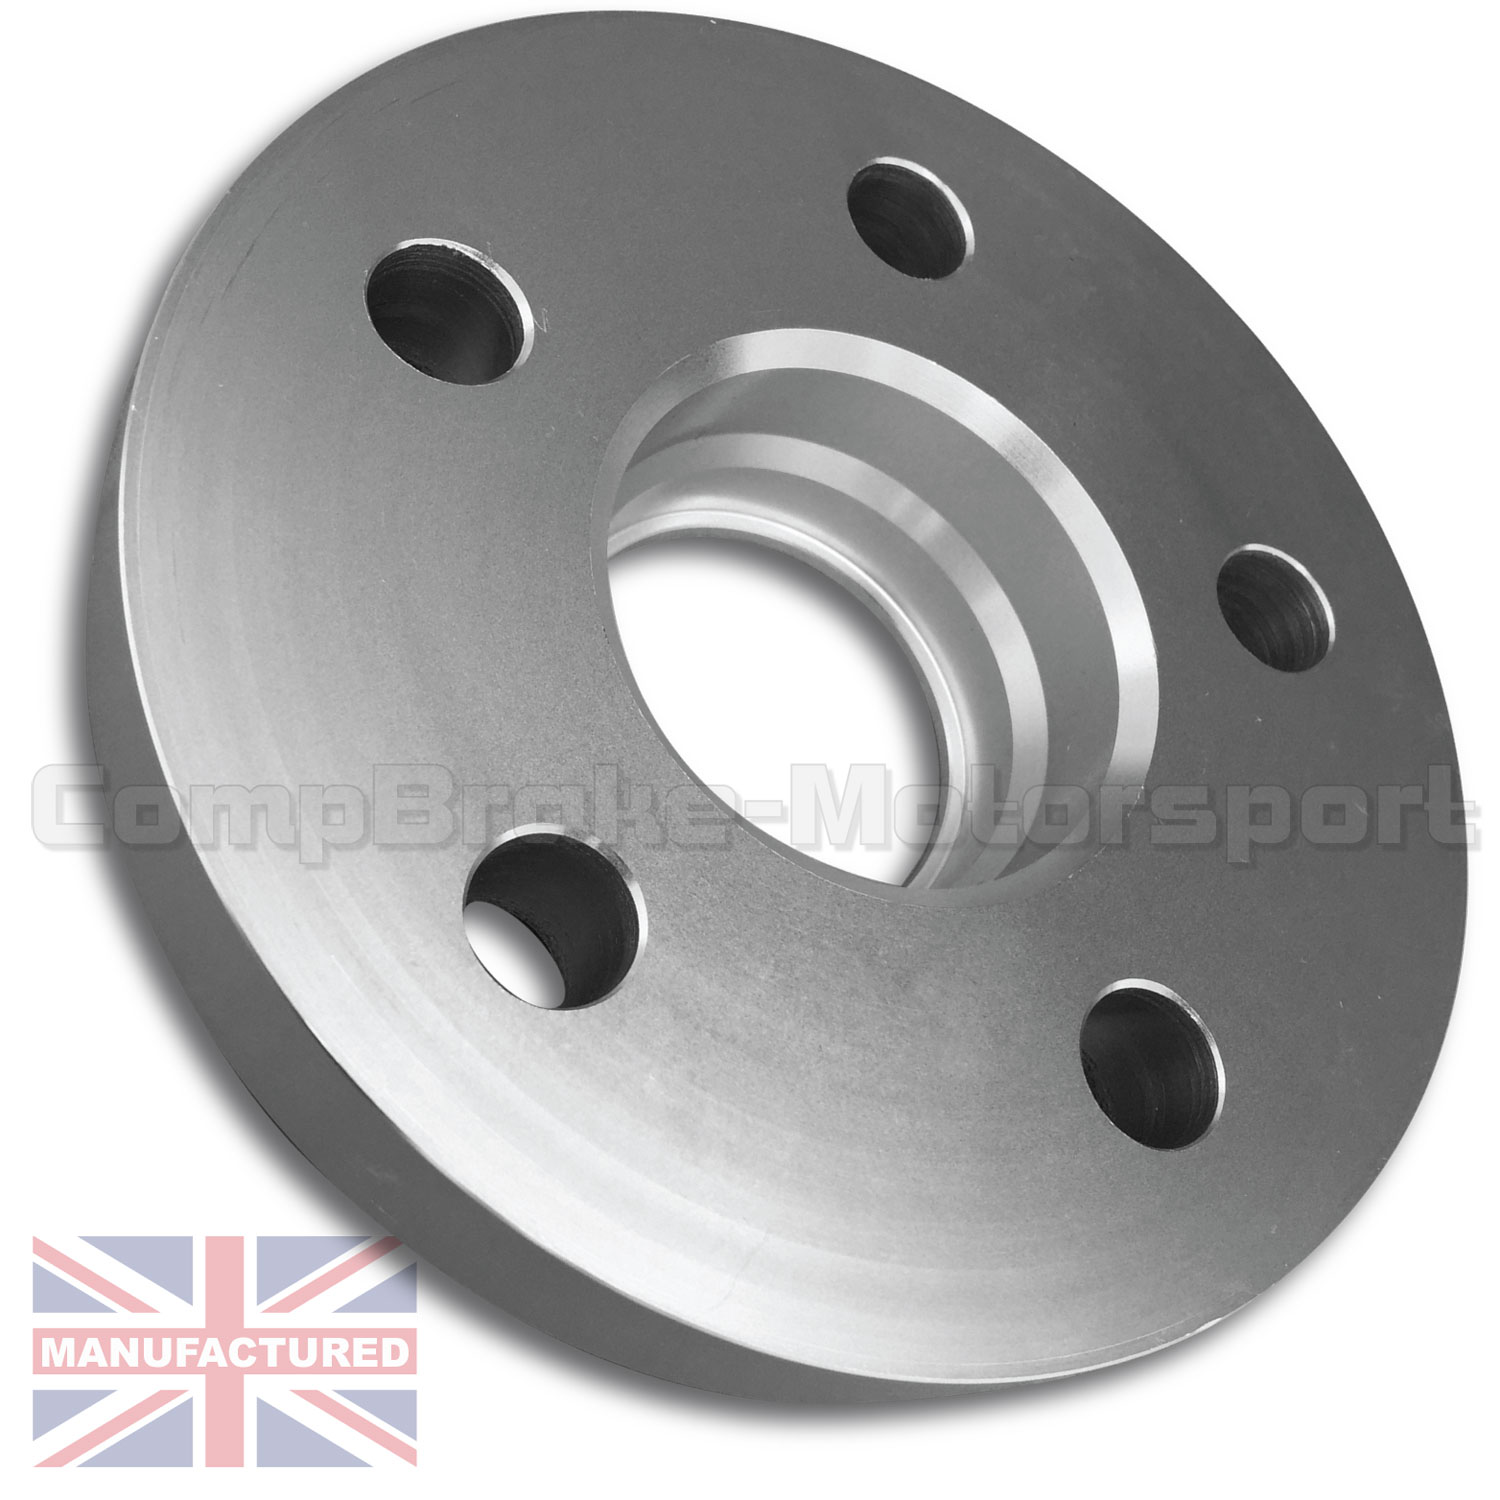 Centric Brake Rotors >> Seat 5/100 Fitment Hubcentric Wheel Spacers [20mm] With ...